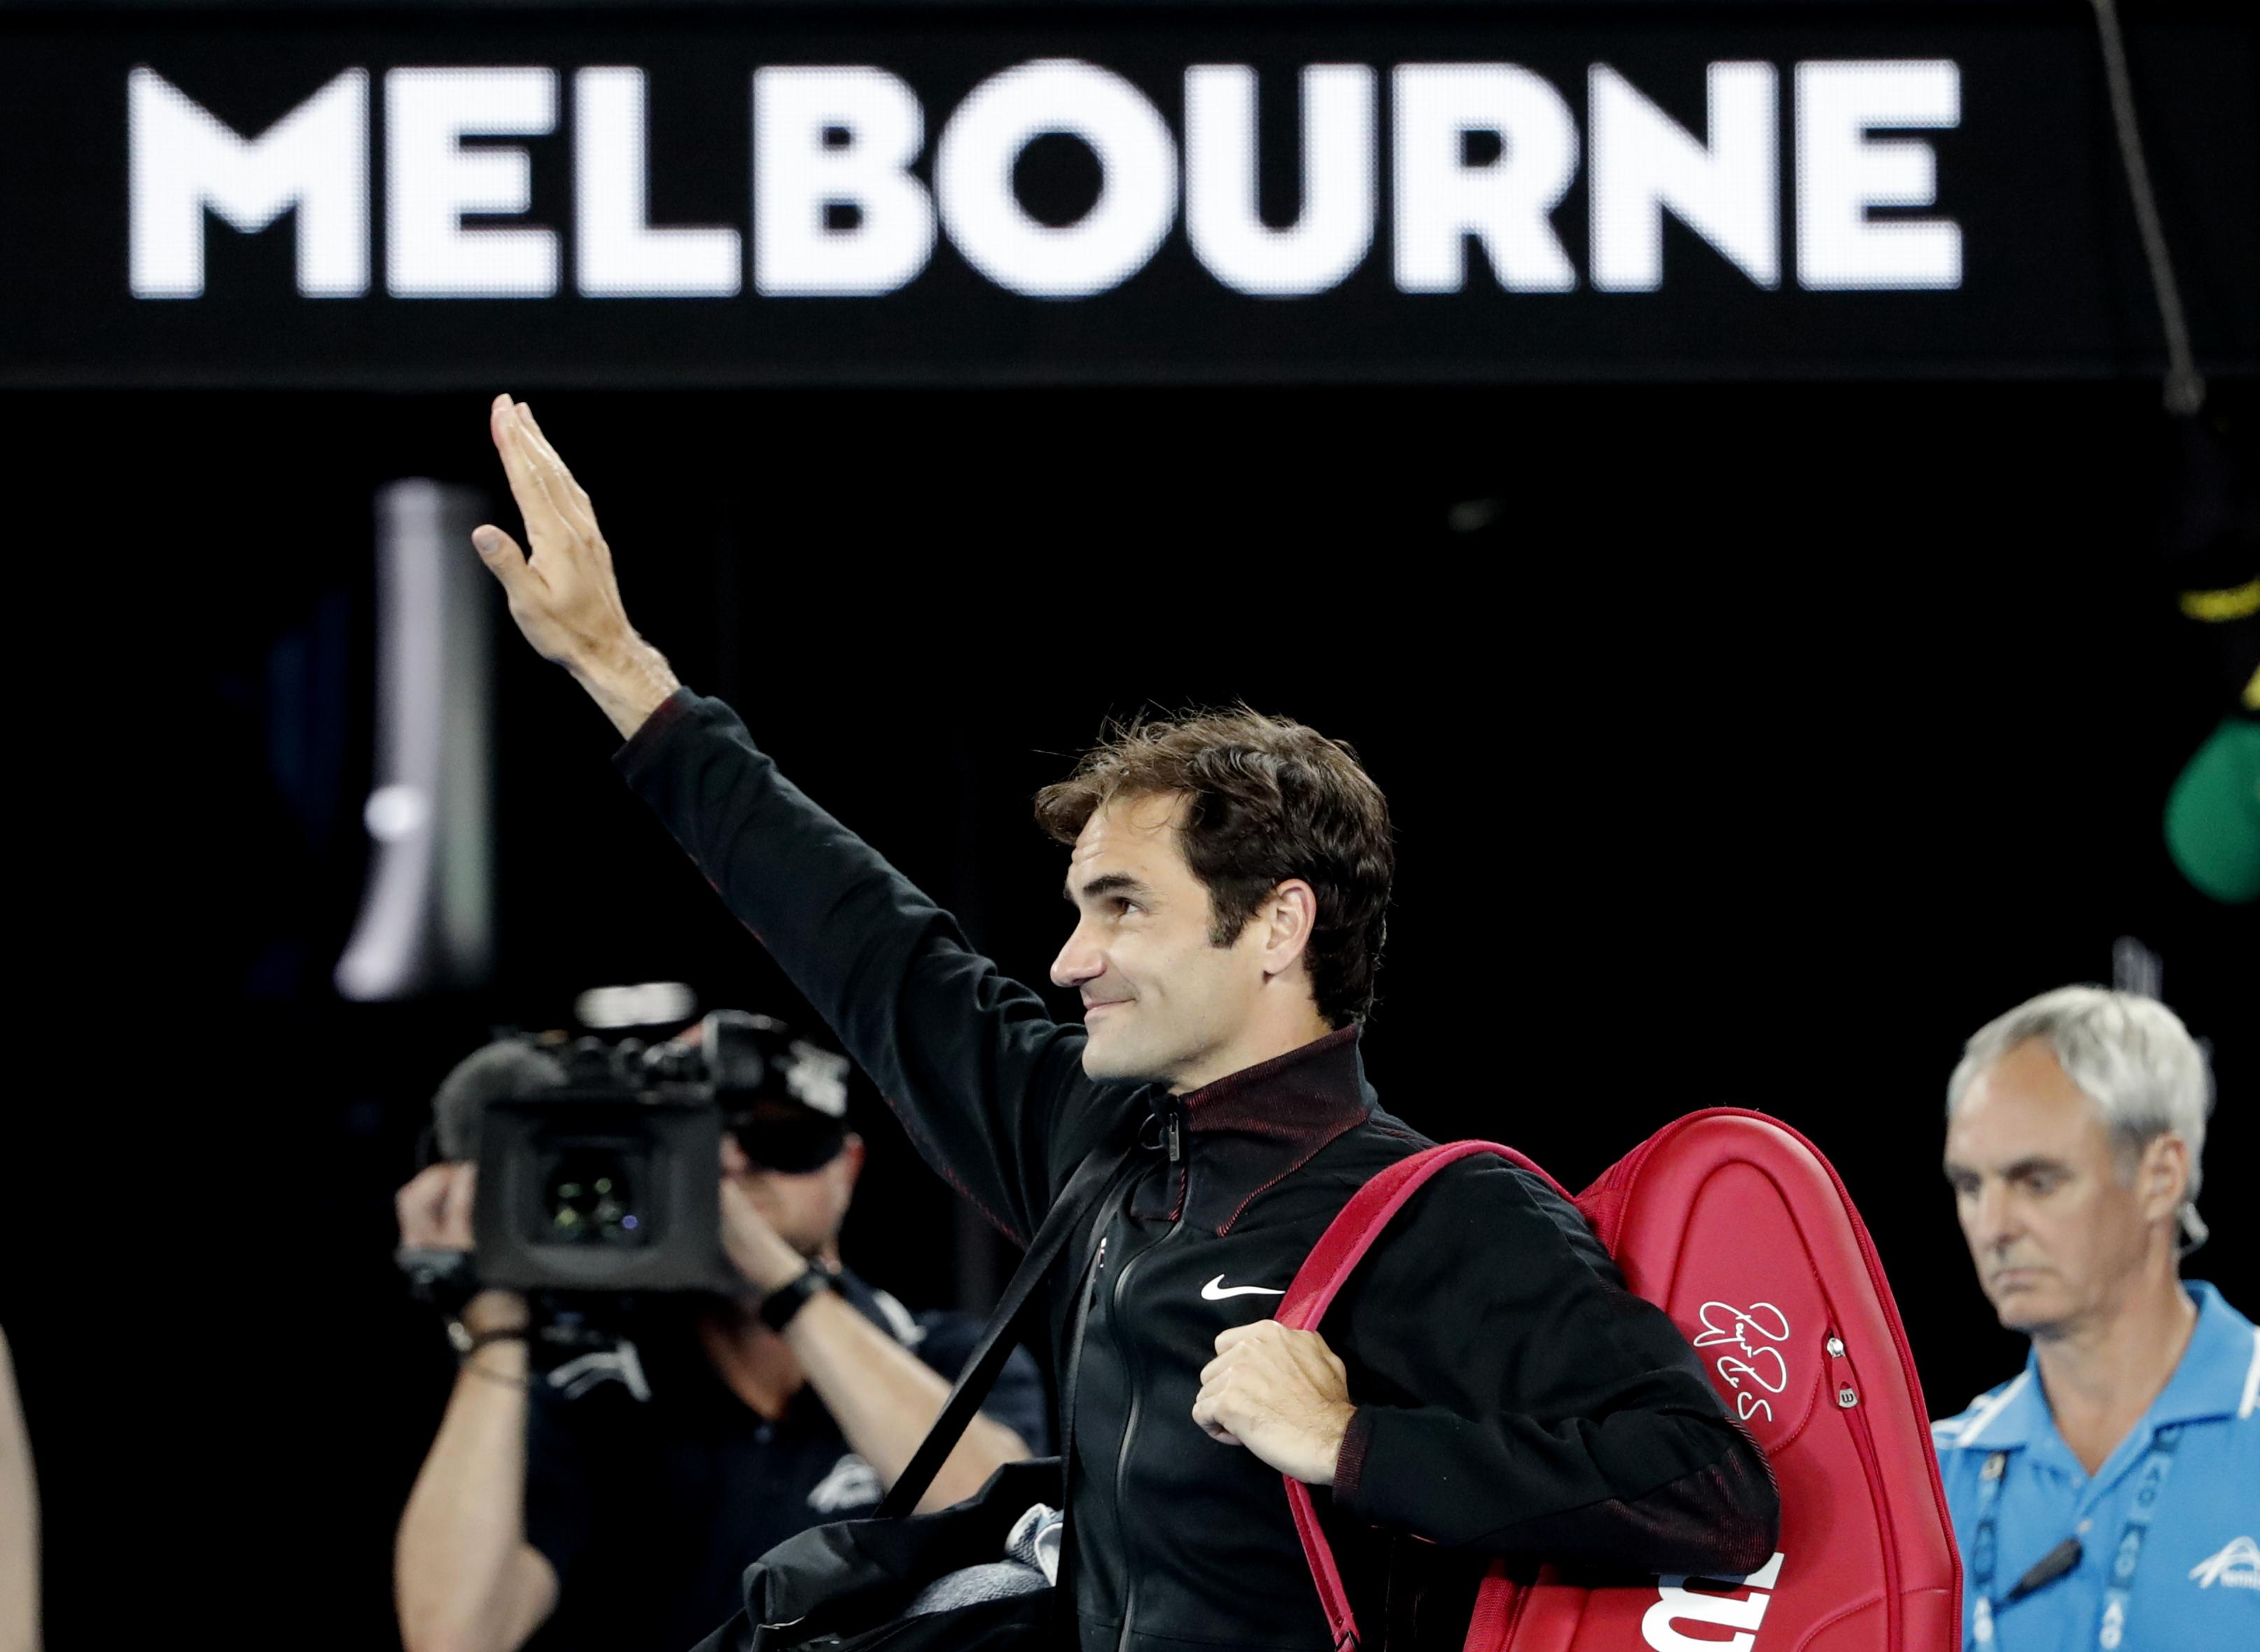 Roger Federer points the way to the semi-finals as he advances in the Australian Open